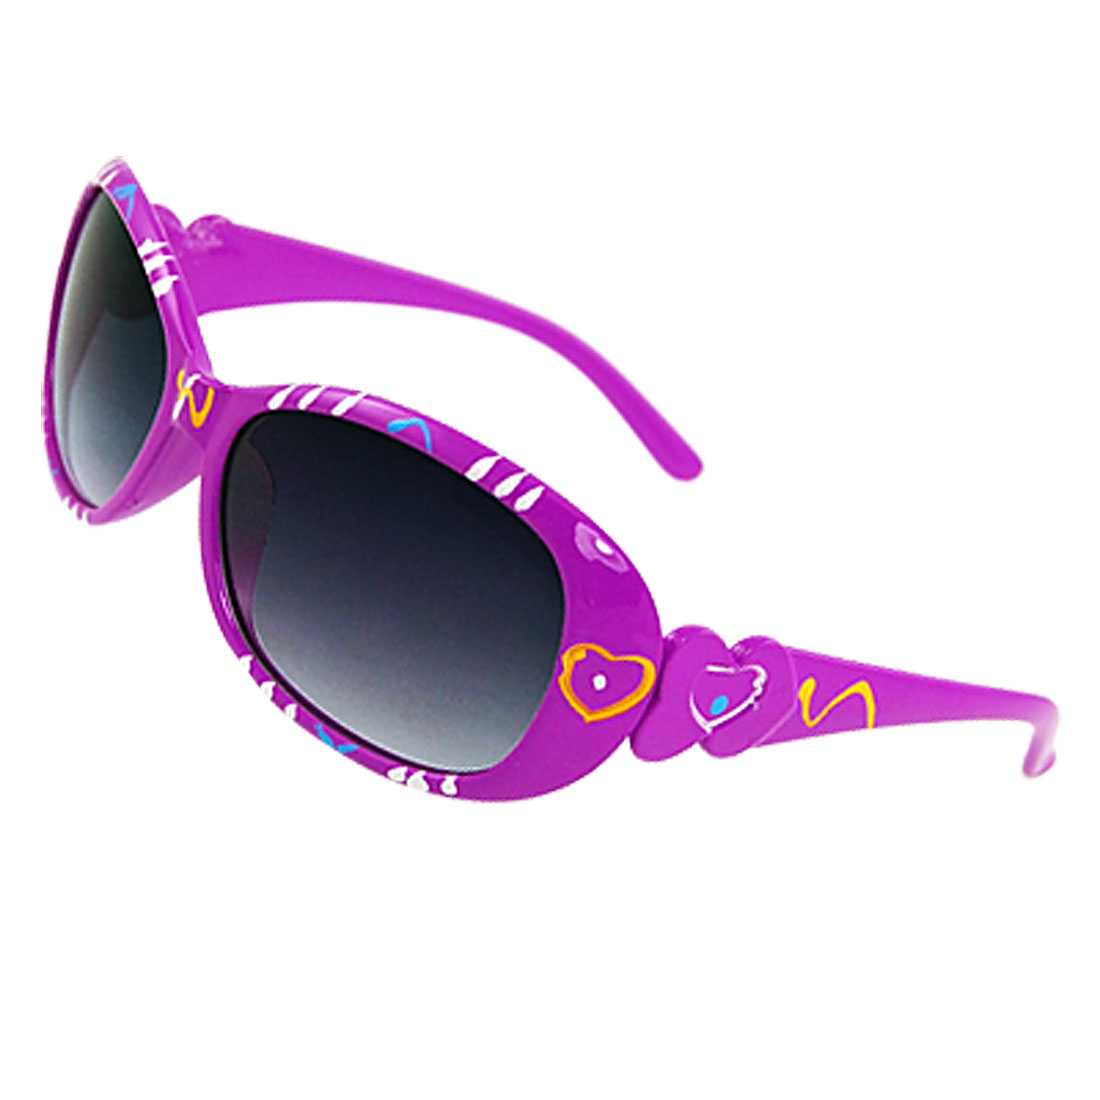 Dark Gray Lens Purple Plastic Full Rim Frame Sunglasses for Kids Child